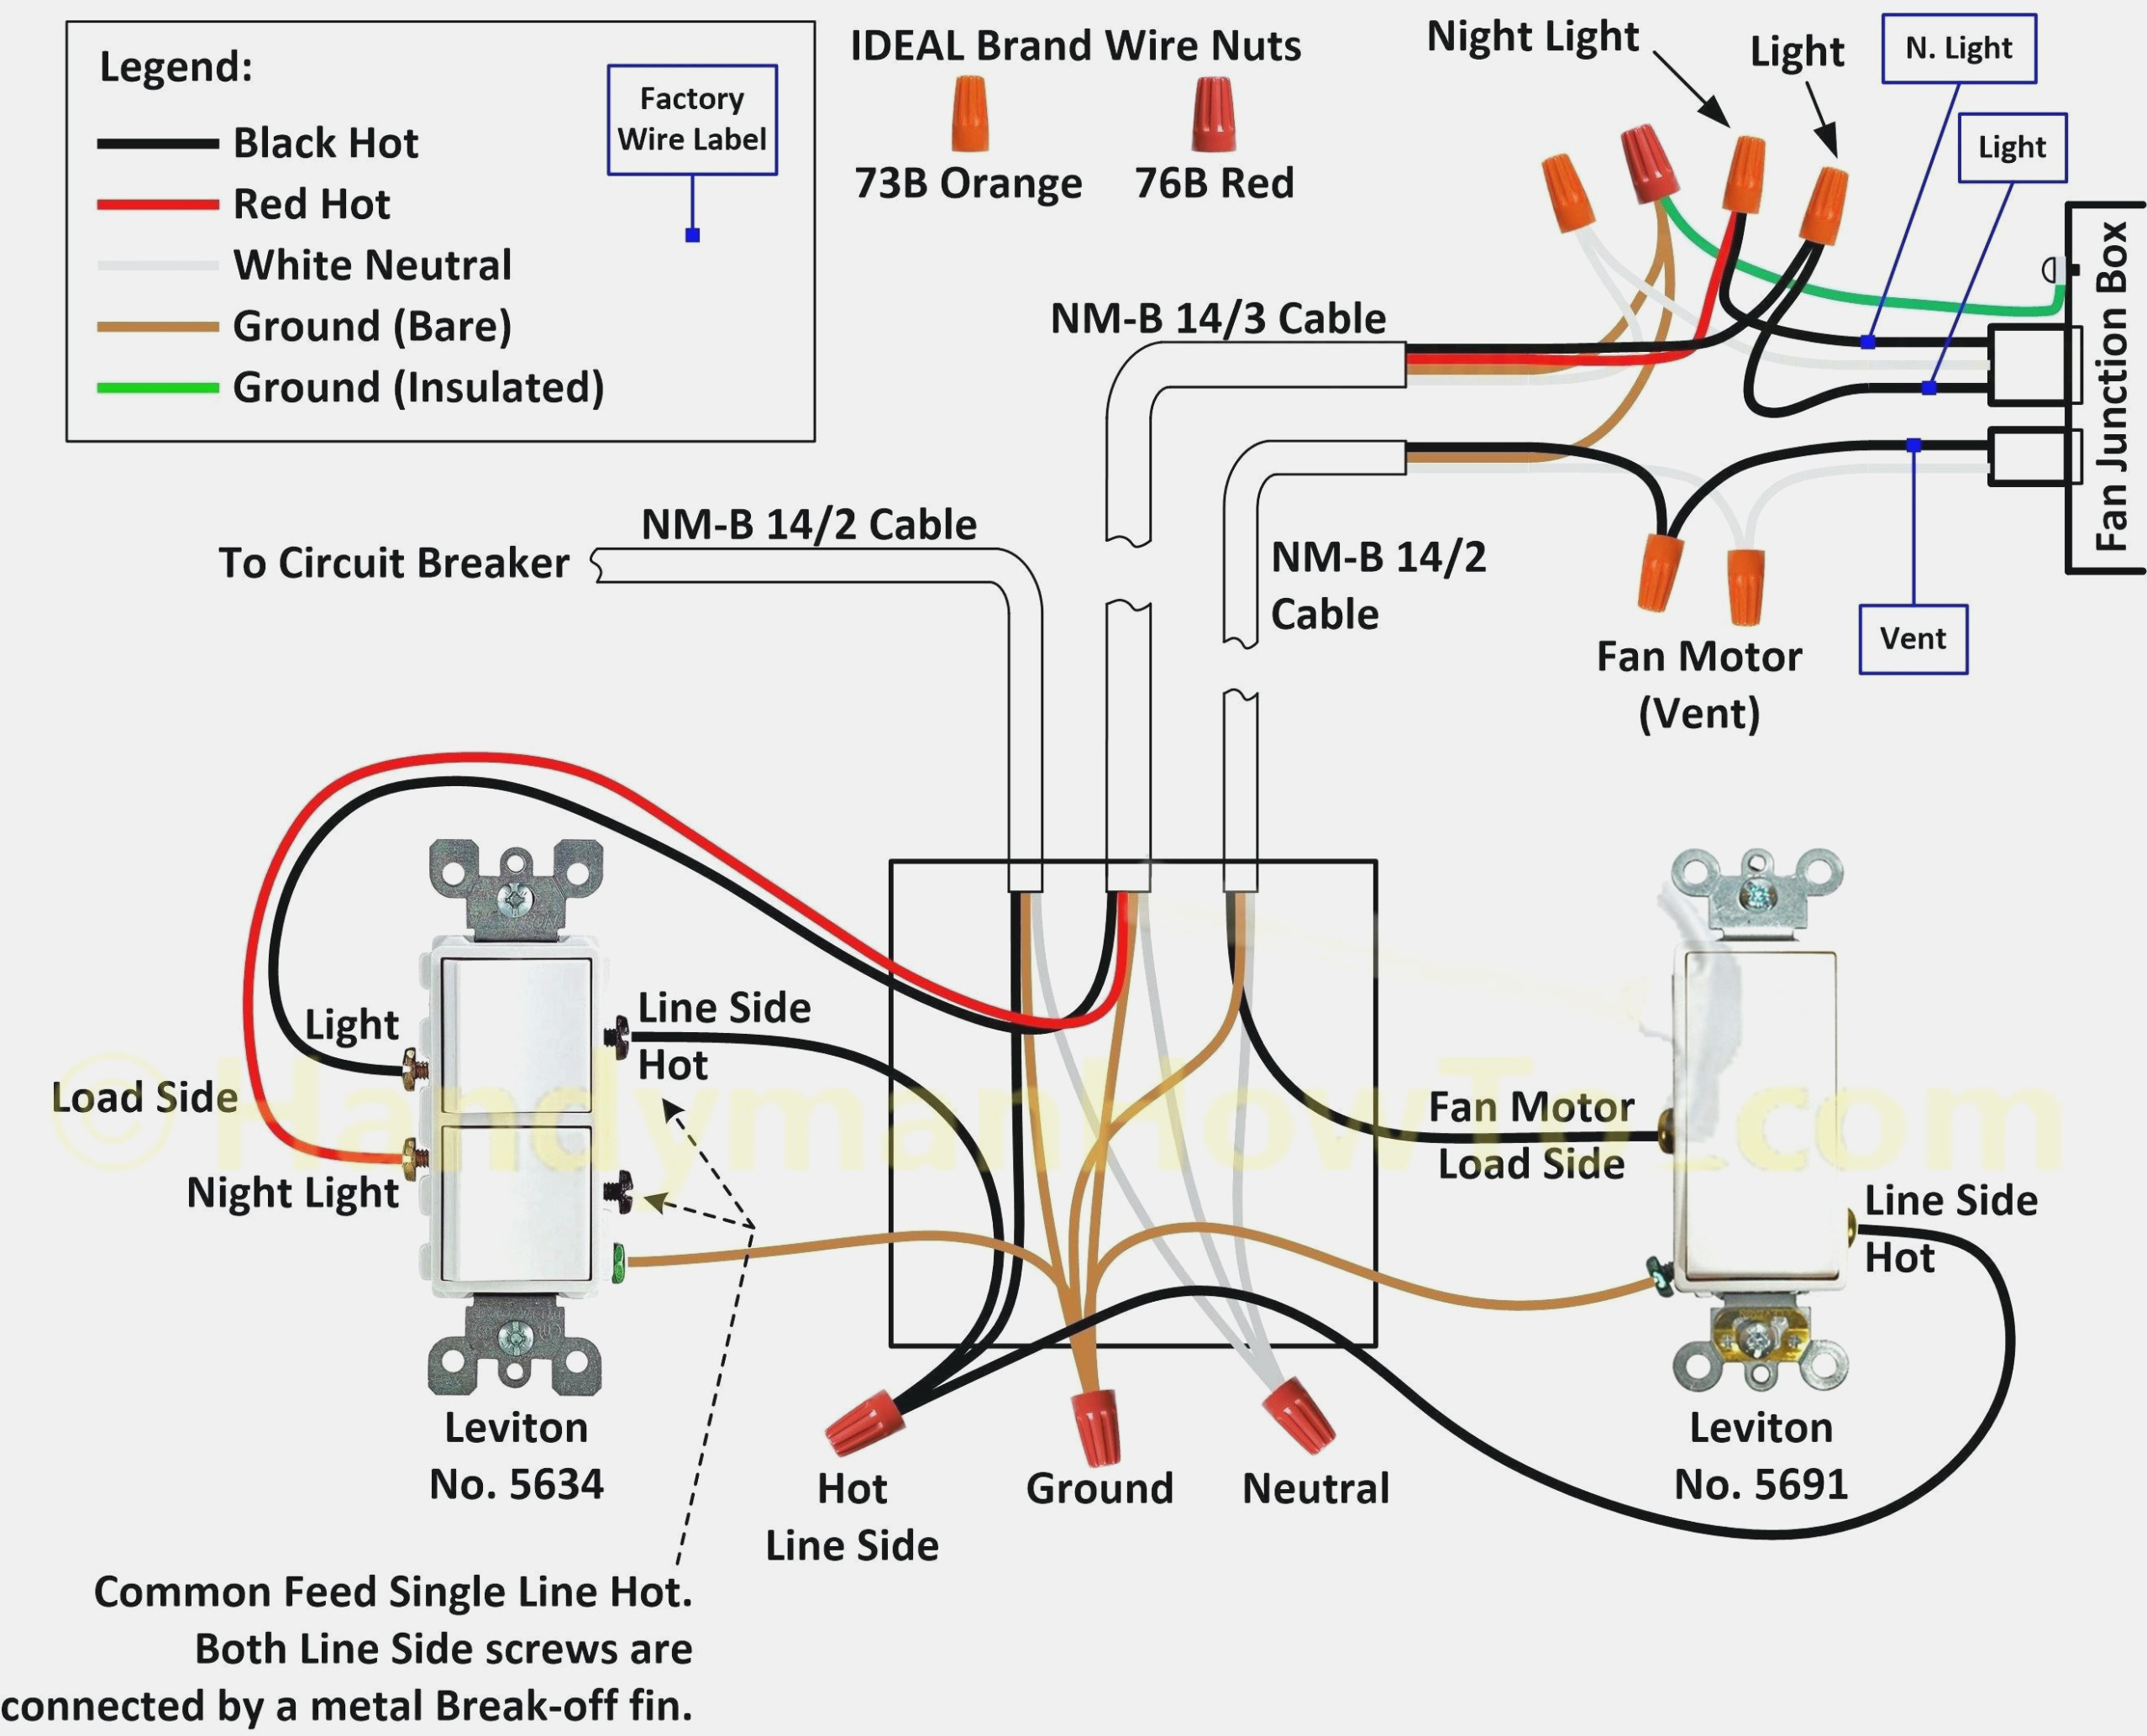 Three Way Dimmer Switch Wiring Diagram | Wiring Diagram - Dimming Switch Wiring Diagram